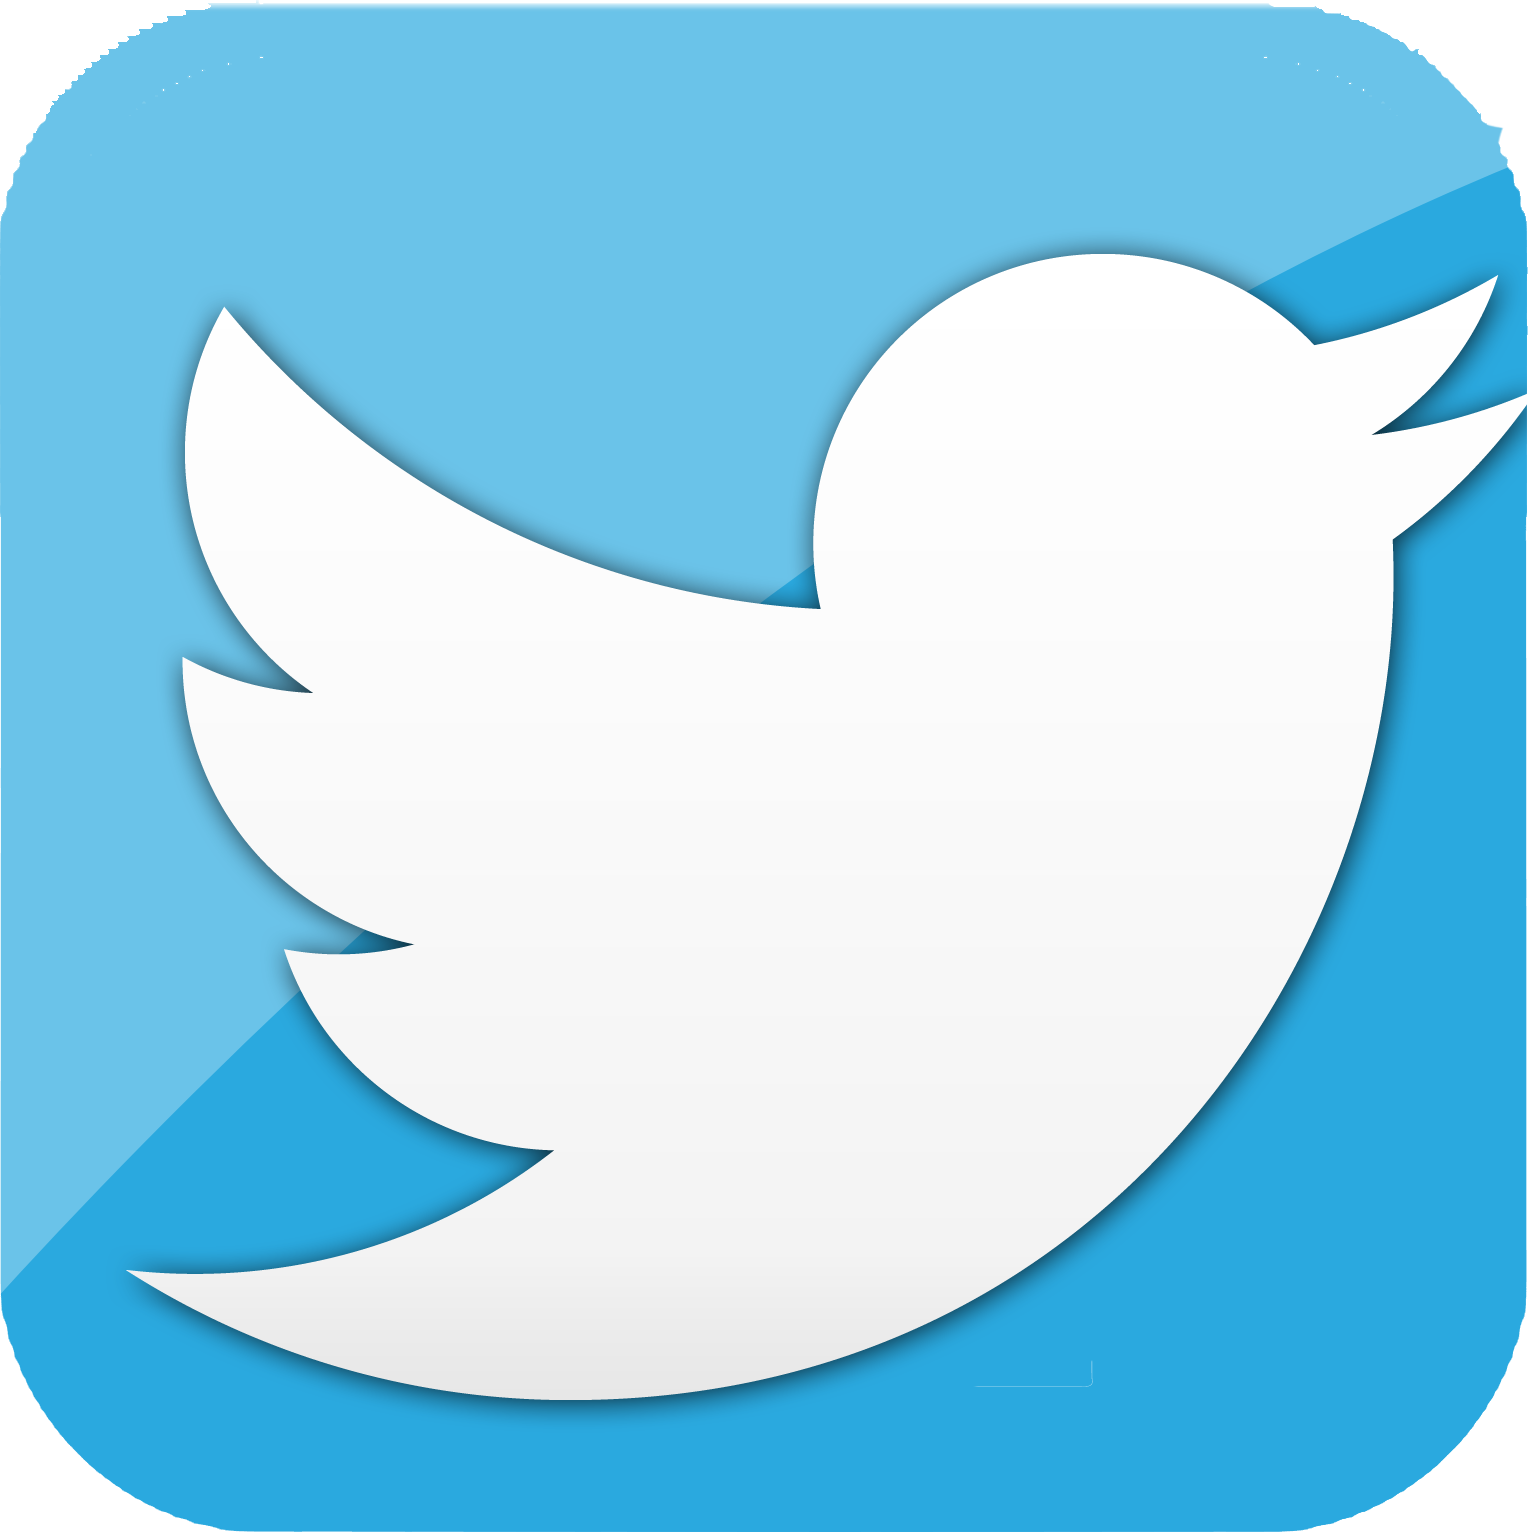 Download Logo Twitter Icon Png Transparent Background Free Download 47457 Freeiconspng